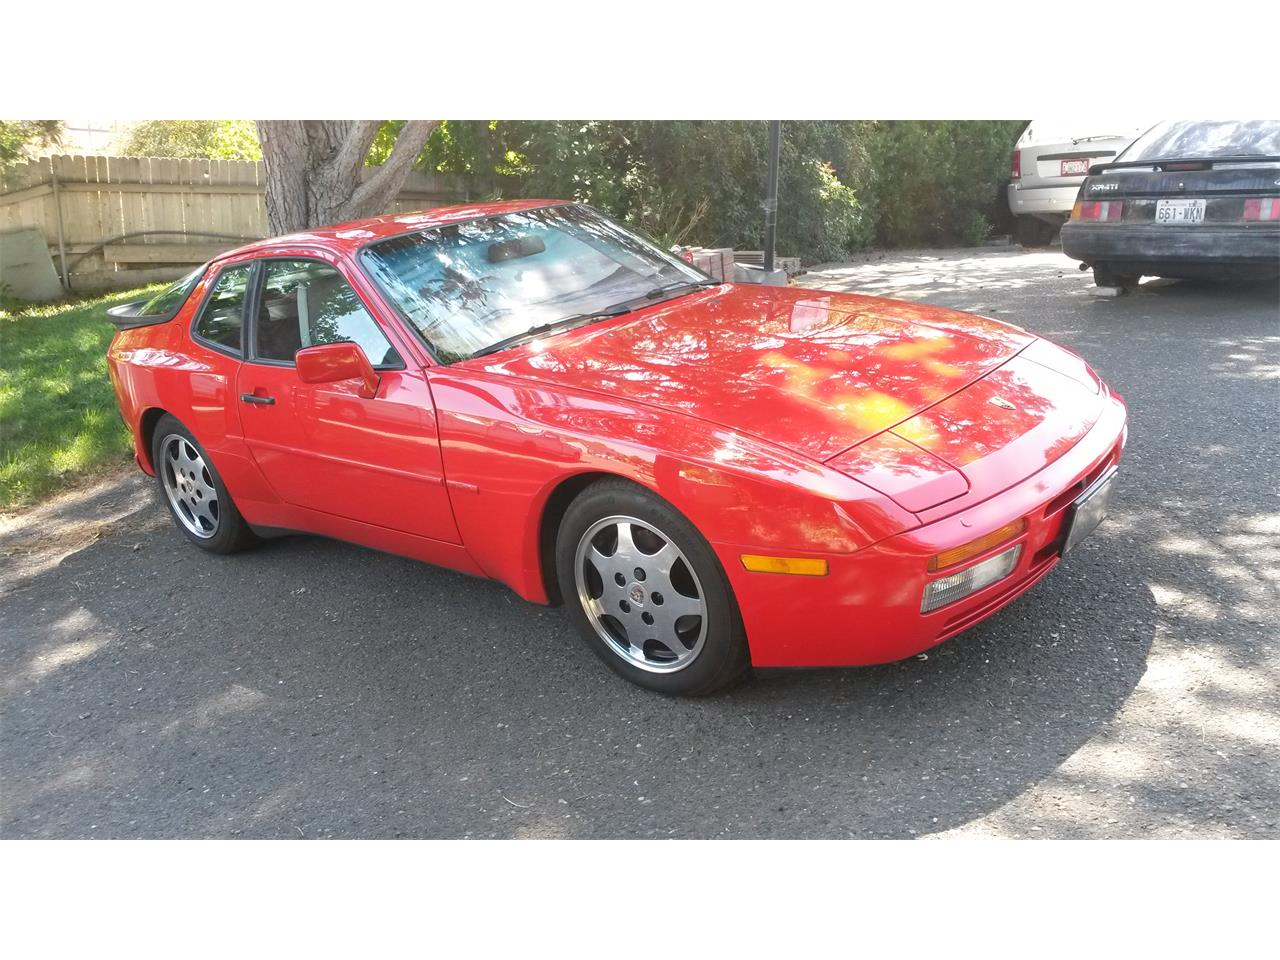 Large Picture of '89 Porsche 944S2 located in Kennewick Washington Offered by a Private Seller - L7PM